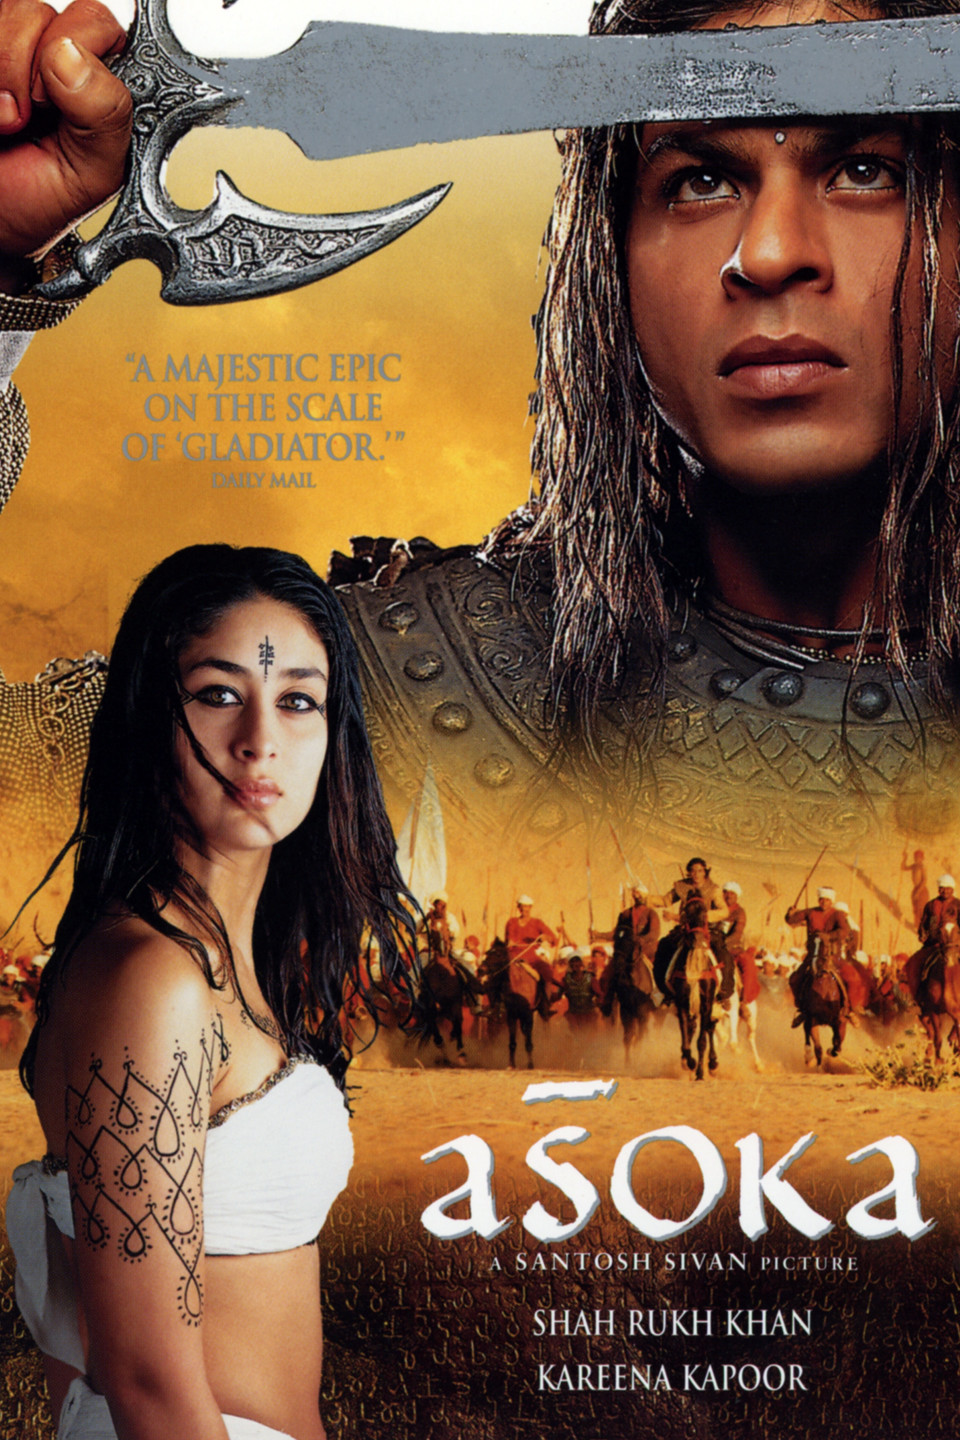 Asoka Hindi Full Movie Download in 720p HD DVDRip